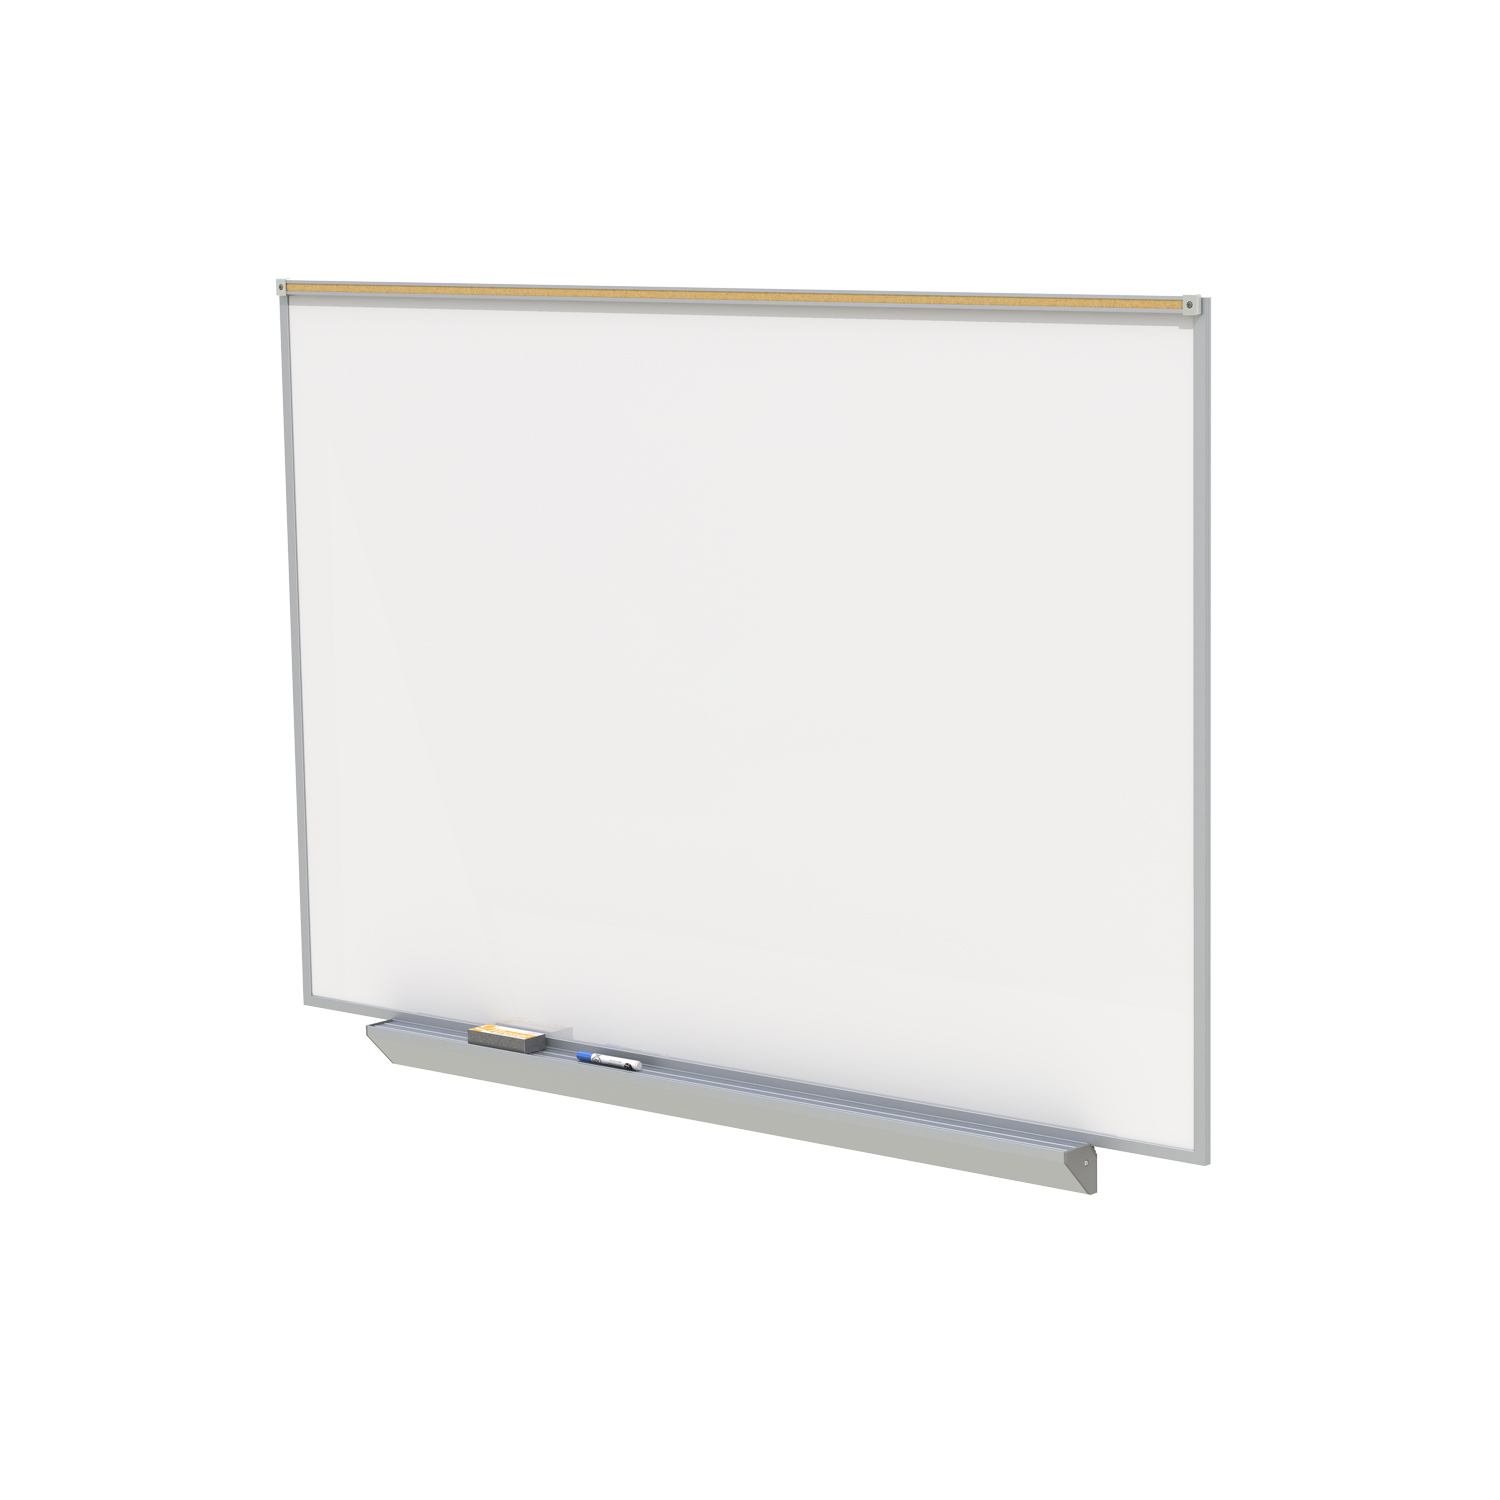 PRM1-34-4 Ghent Proma Magnetic Markerboard Porcelain Projection Whiteboard with Aluminum Frame, 3'H x 4'W